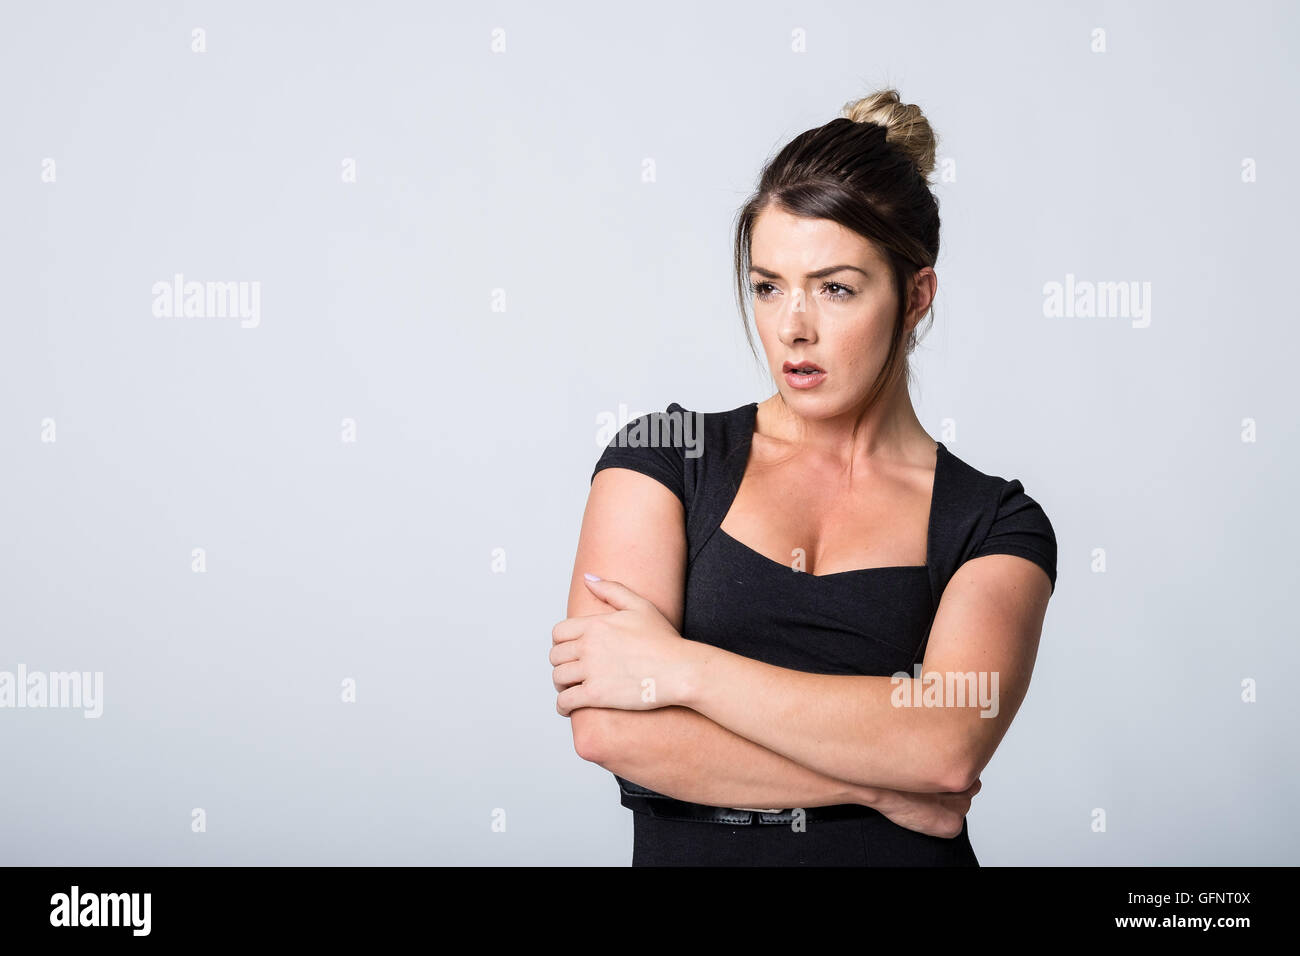 Annoyed woman with arms folded with closed body language - Stock Image